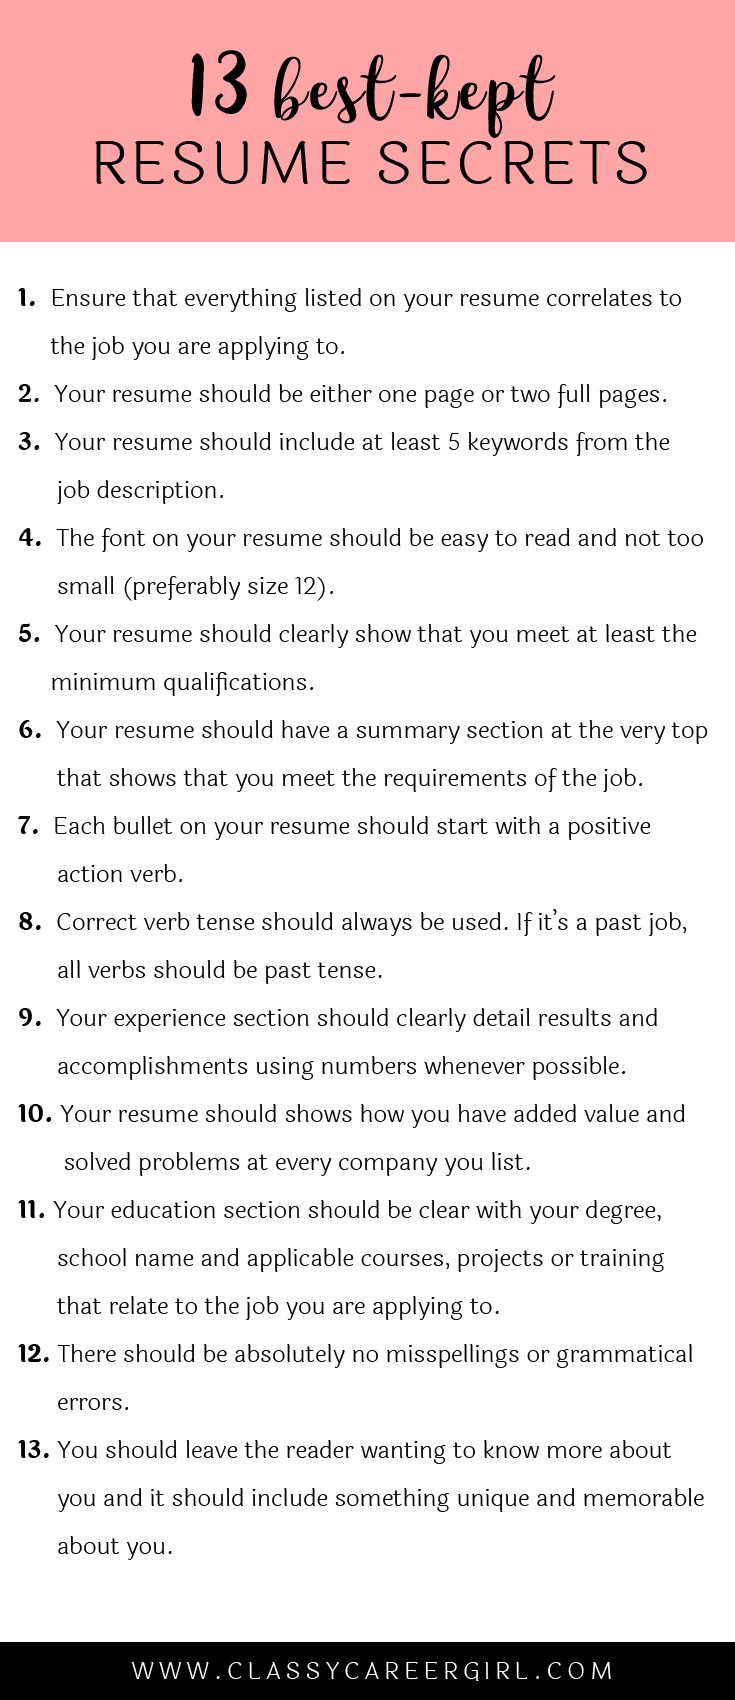 Opposenewapstandardsus  Seductive  Ideas About Resume On Pinterest  Cv Format Resume Cv And  With Licious Some Hiring Managers Will Toss Your Resume Out If You Dont Know These  With Amazing What A Good Resume Looks Like Also Keywords To Use In A Resume In Addition Graphic Designer Resume Sample And Download Resume Template As Well As Meaning Of Resume Additionally Sample Resume Objective From Pinterestcom With Opposenewapstandardsus  Licious  Ideas About Resume On Pinterest  Cv Format Resume Cv And  With Amazing Some Hiring Managers Will Toss Your Resume Out If You Dont Know These  And Seductive What A Good Resume Looks Like Also Keywords To Use In A Resume In Addition Graphic Designer Resume Sample From Pinterestcom